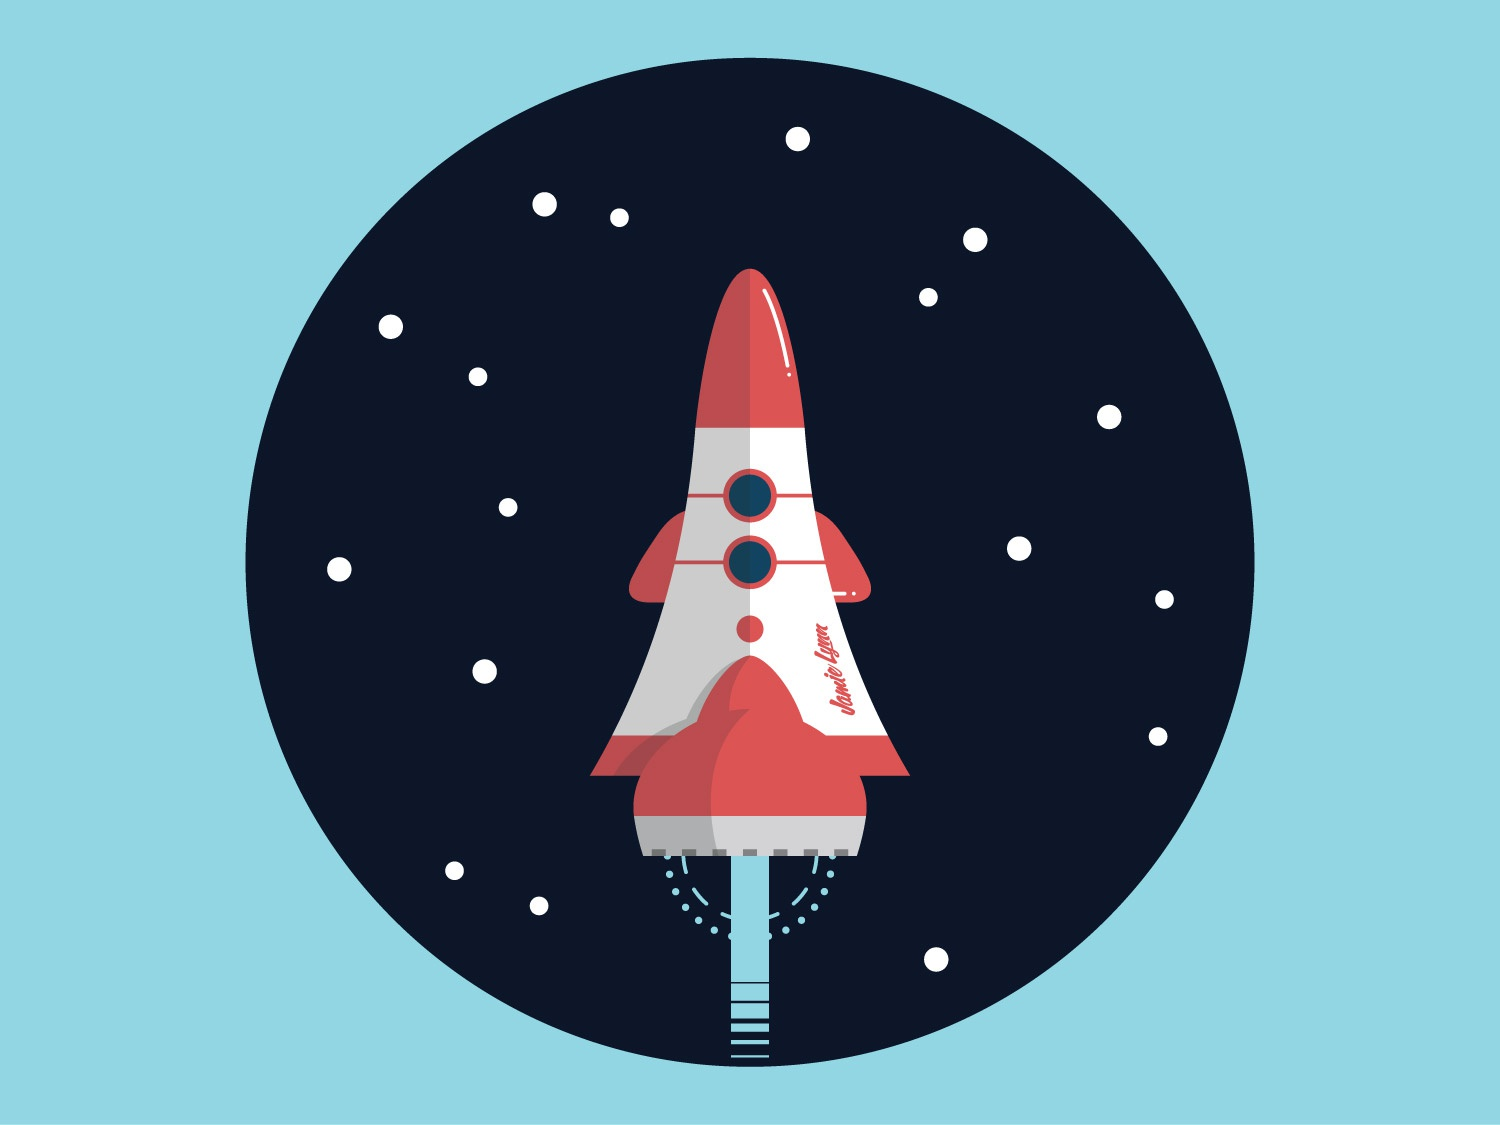 Flight of the JamieLynn stars rocket spaceship space vector illustration